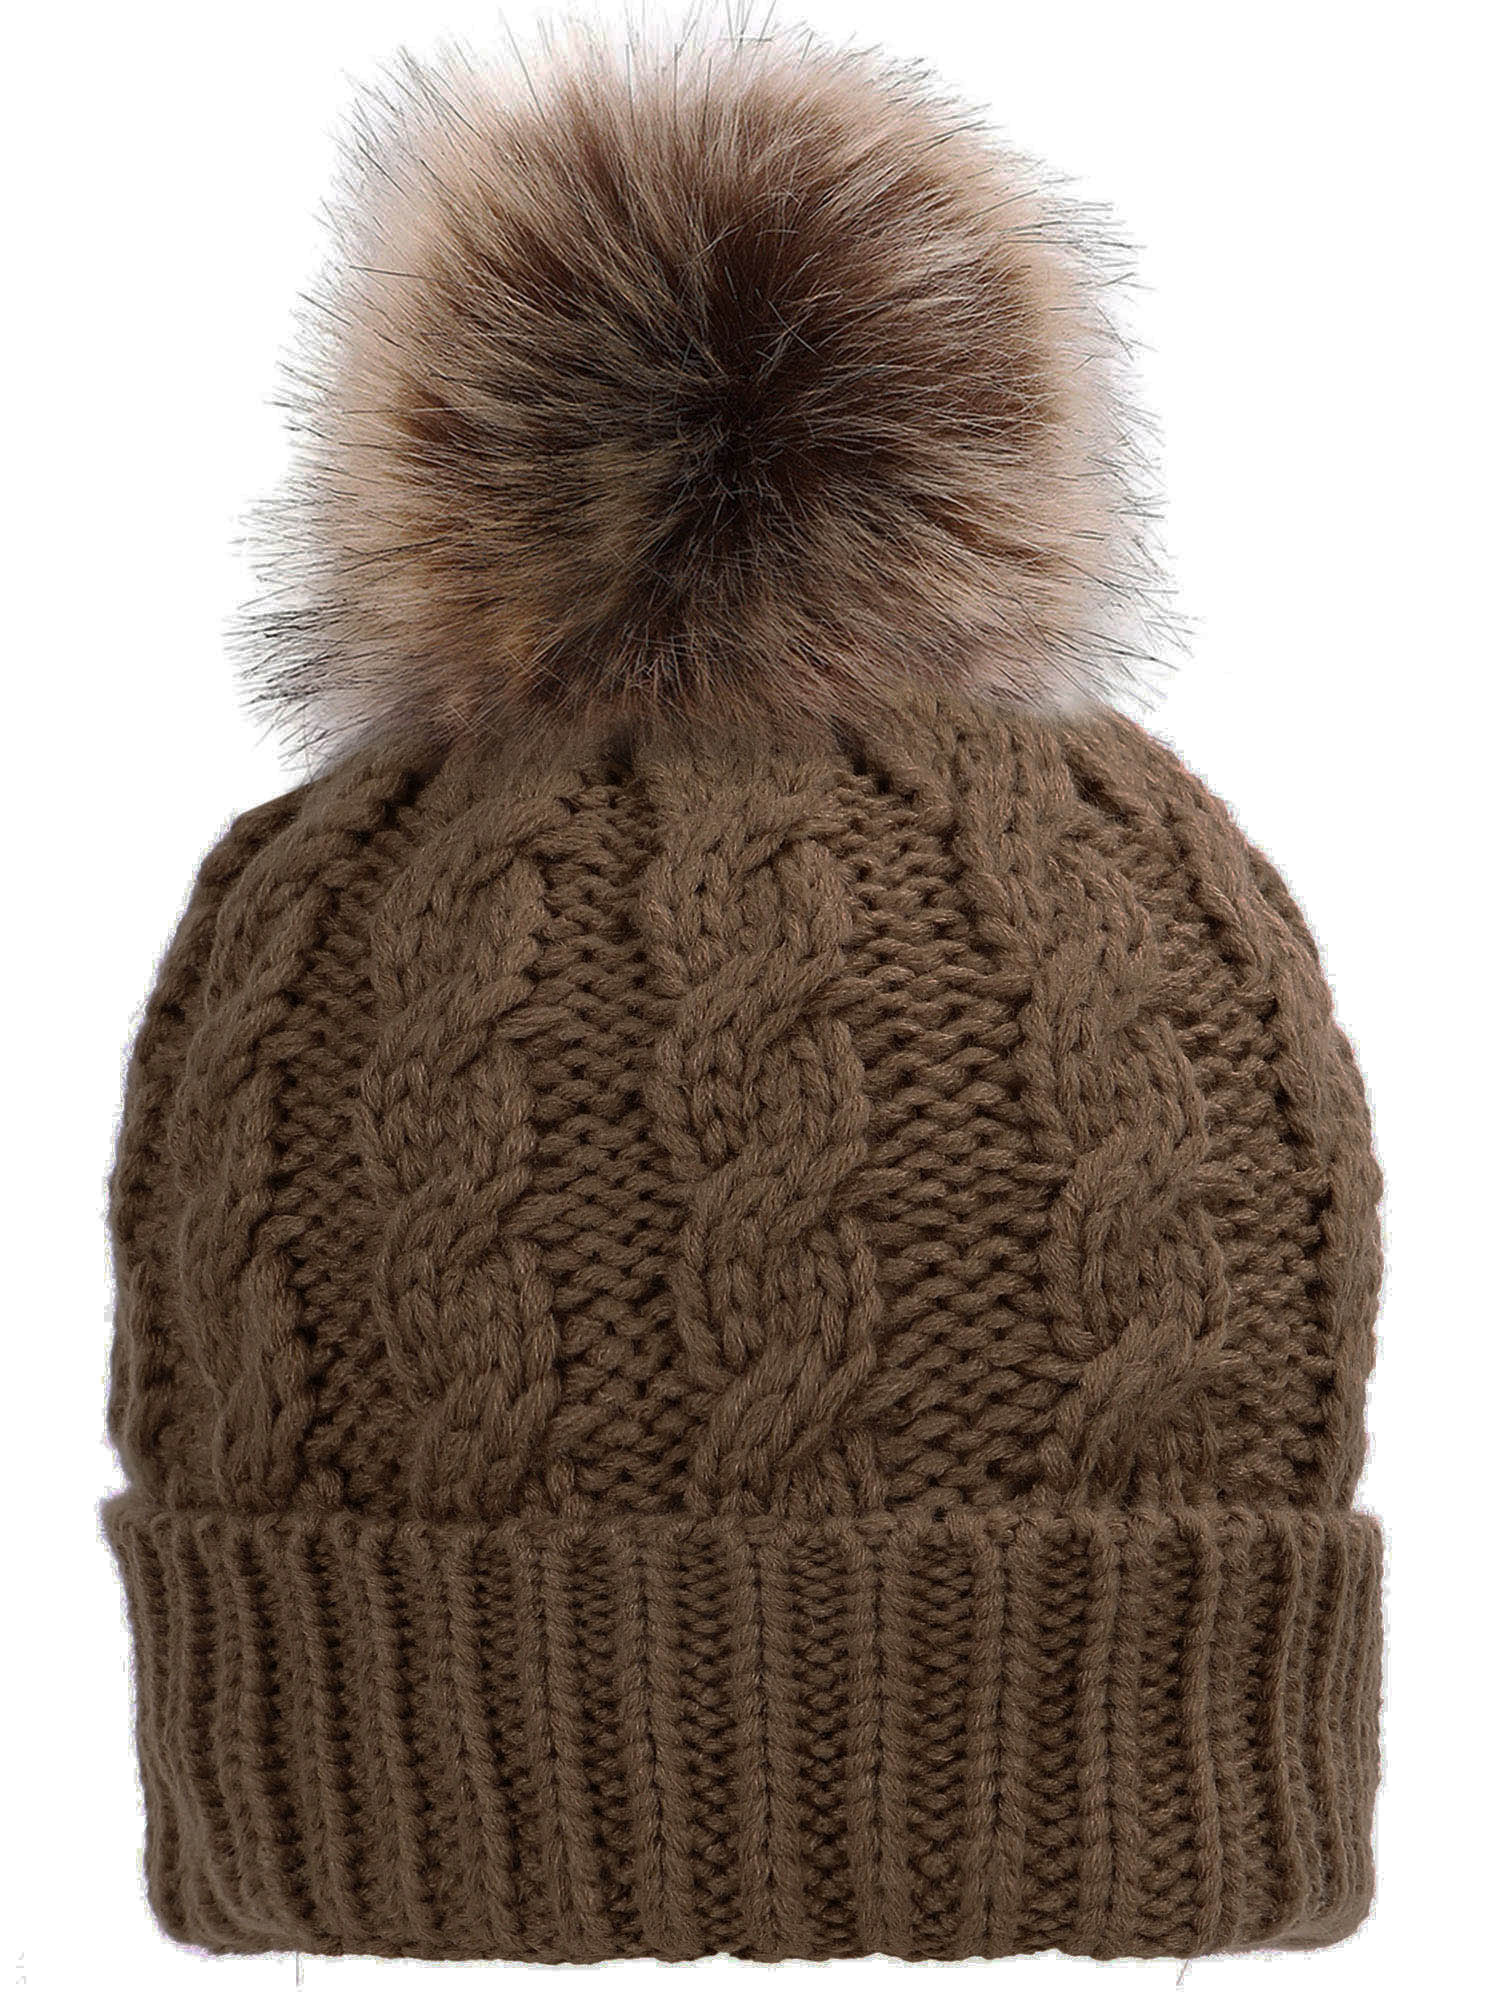 12faf09af1c Simplicity Men   Women s Winter Hand Knit Faux Fur Black Pompoms Beanie Hat  - Walmart.com